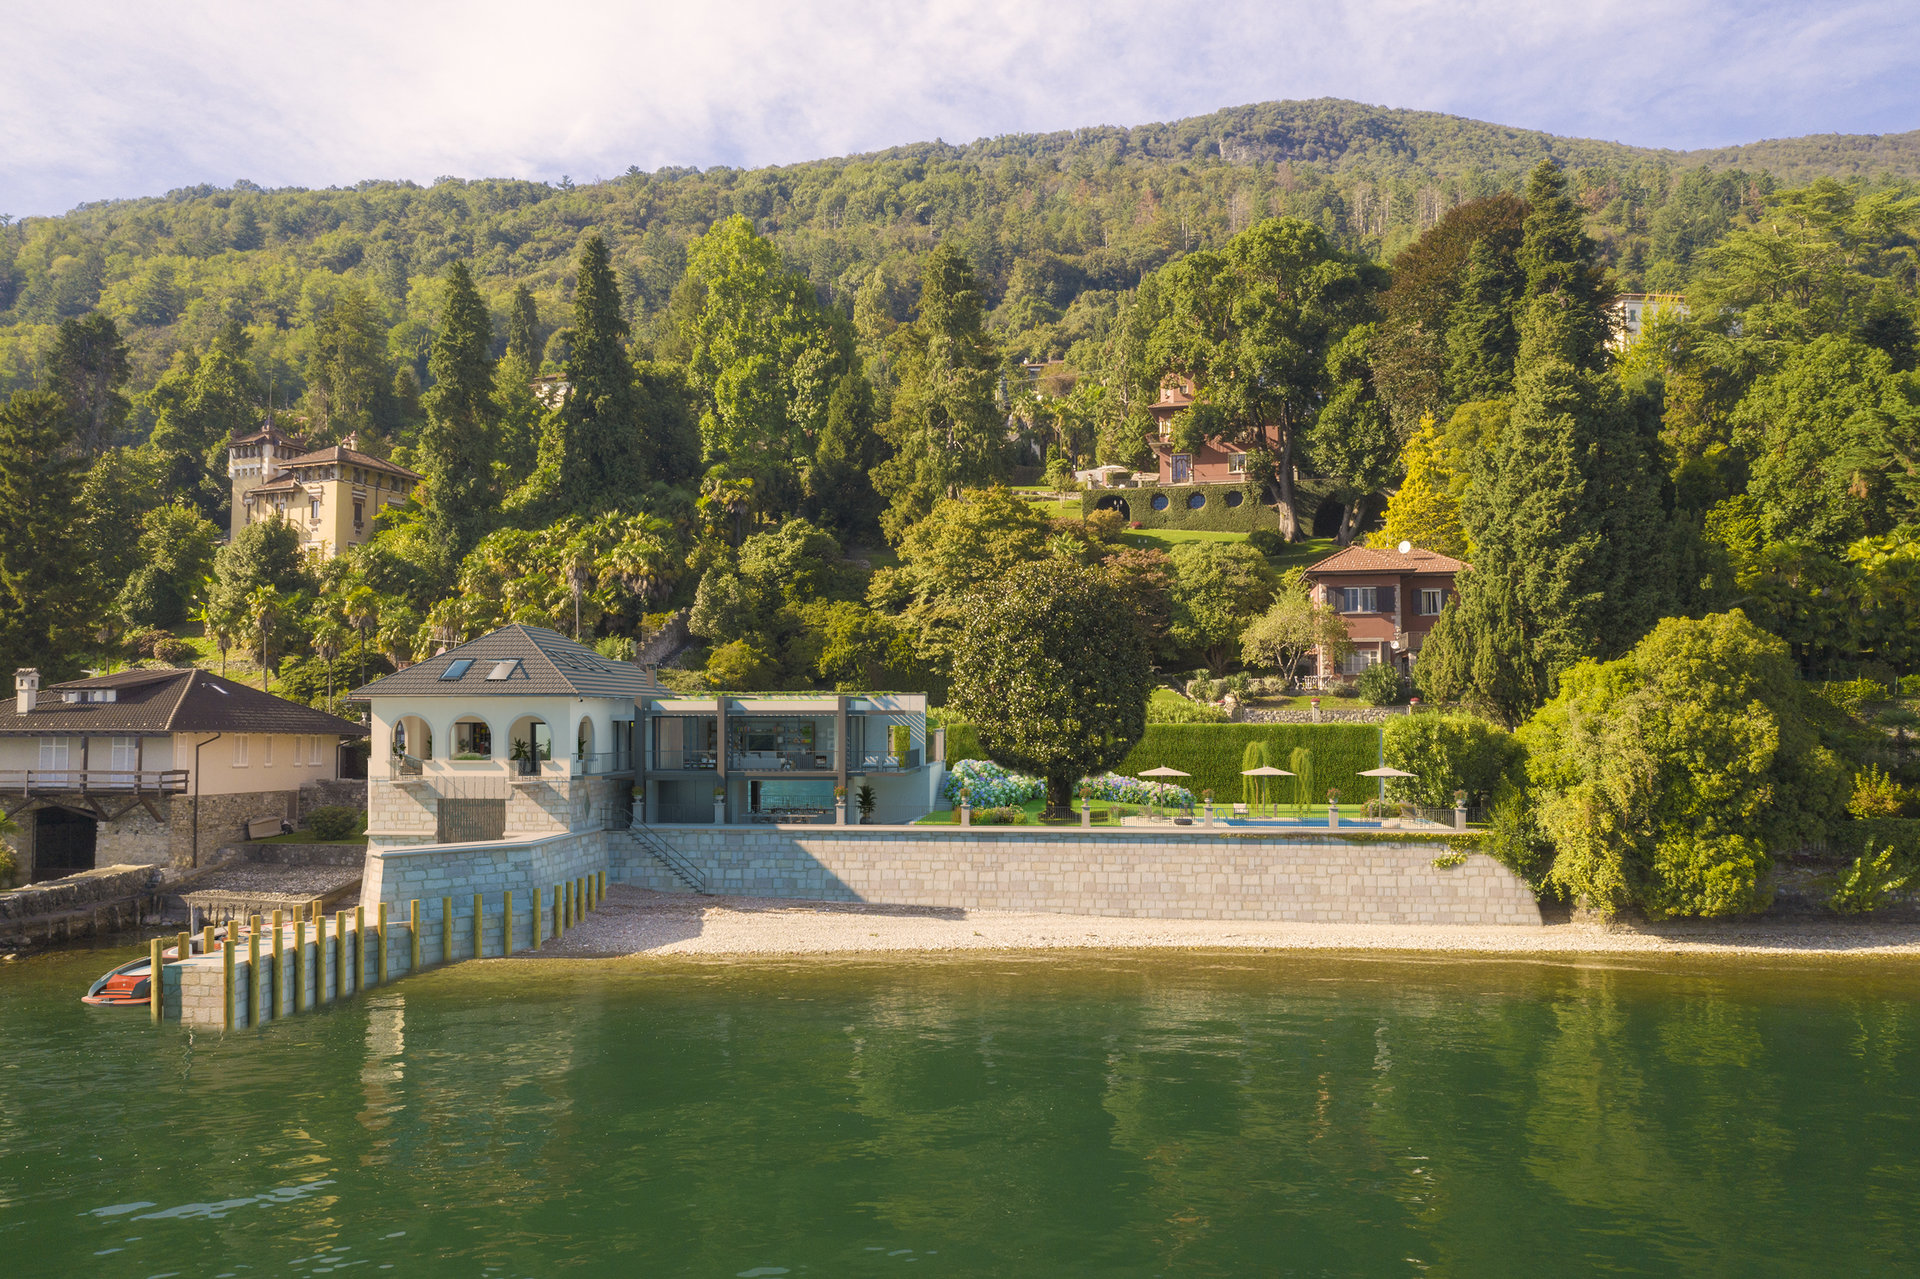 Period villa pieds dans l'eau for sale in Ghiffa - lake view villa